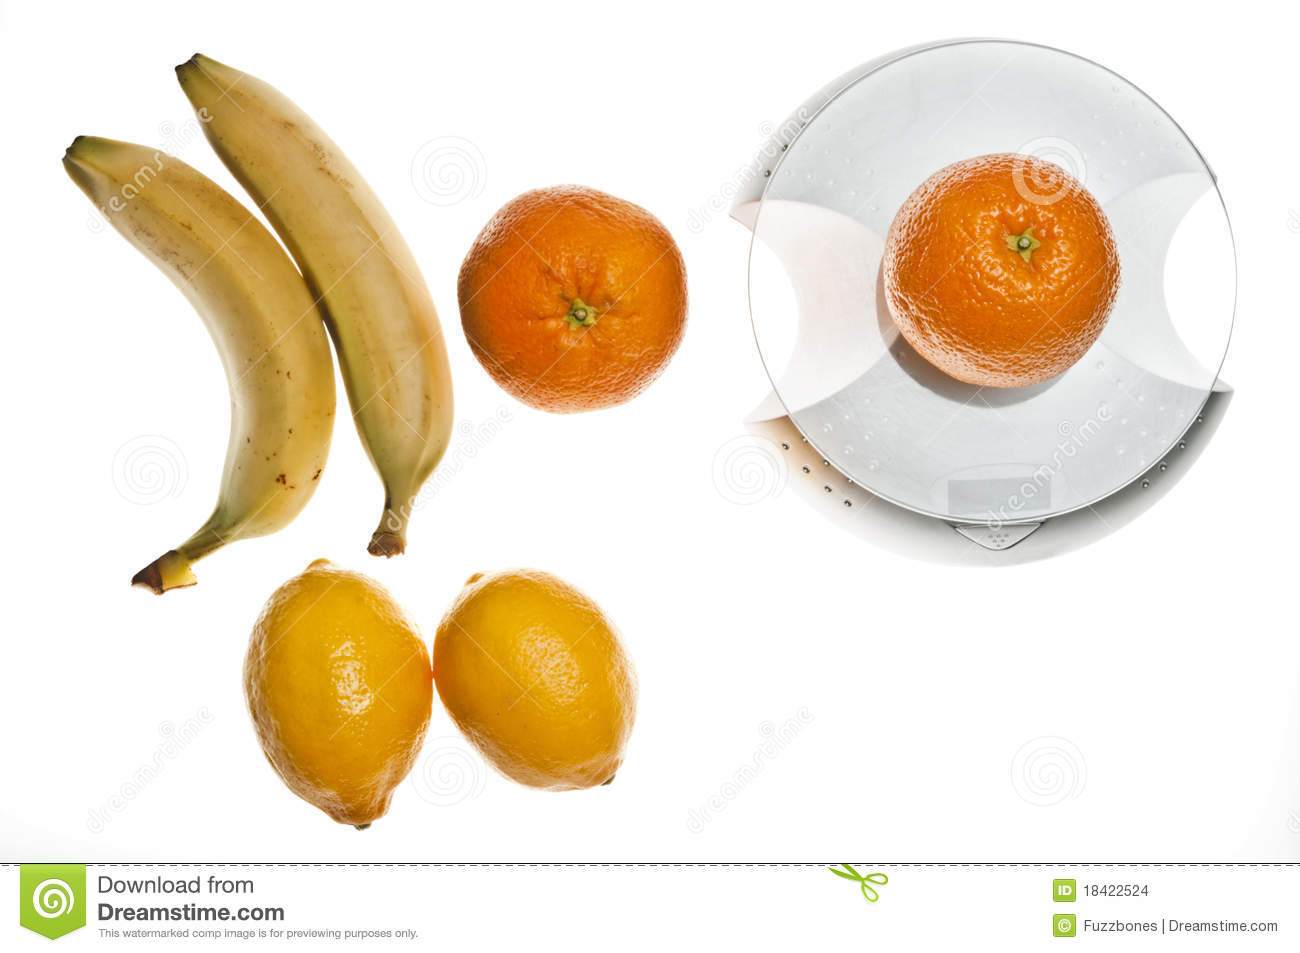 Fruits on food scale